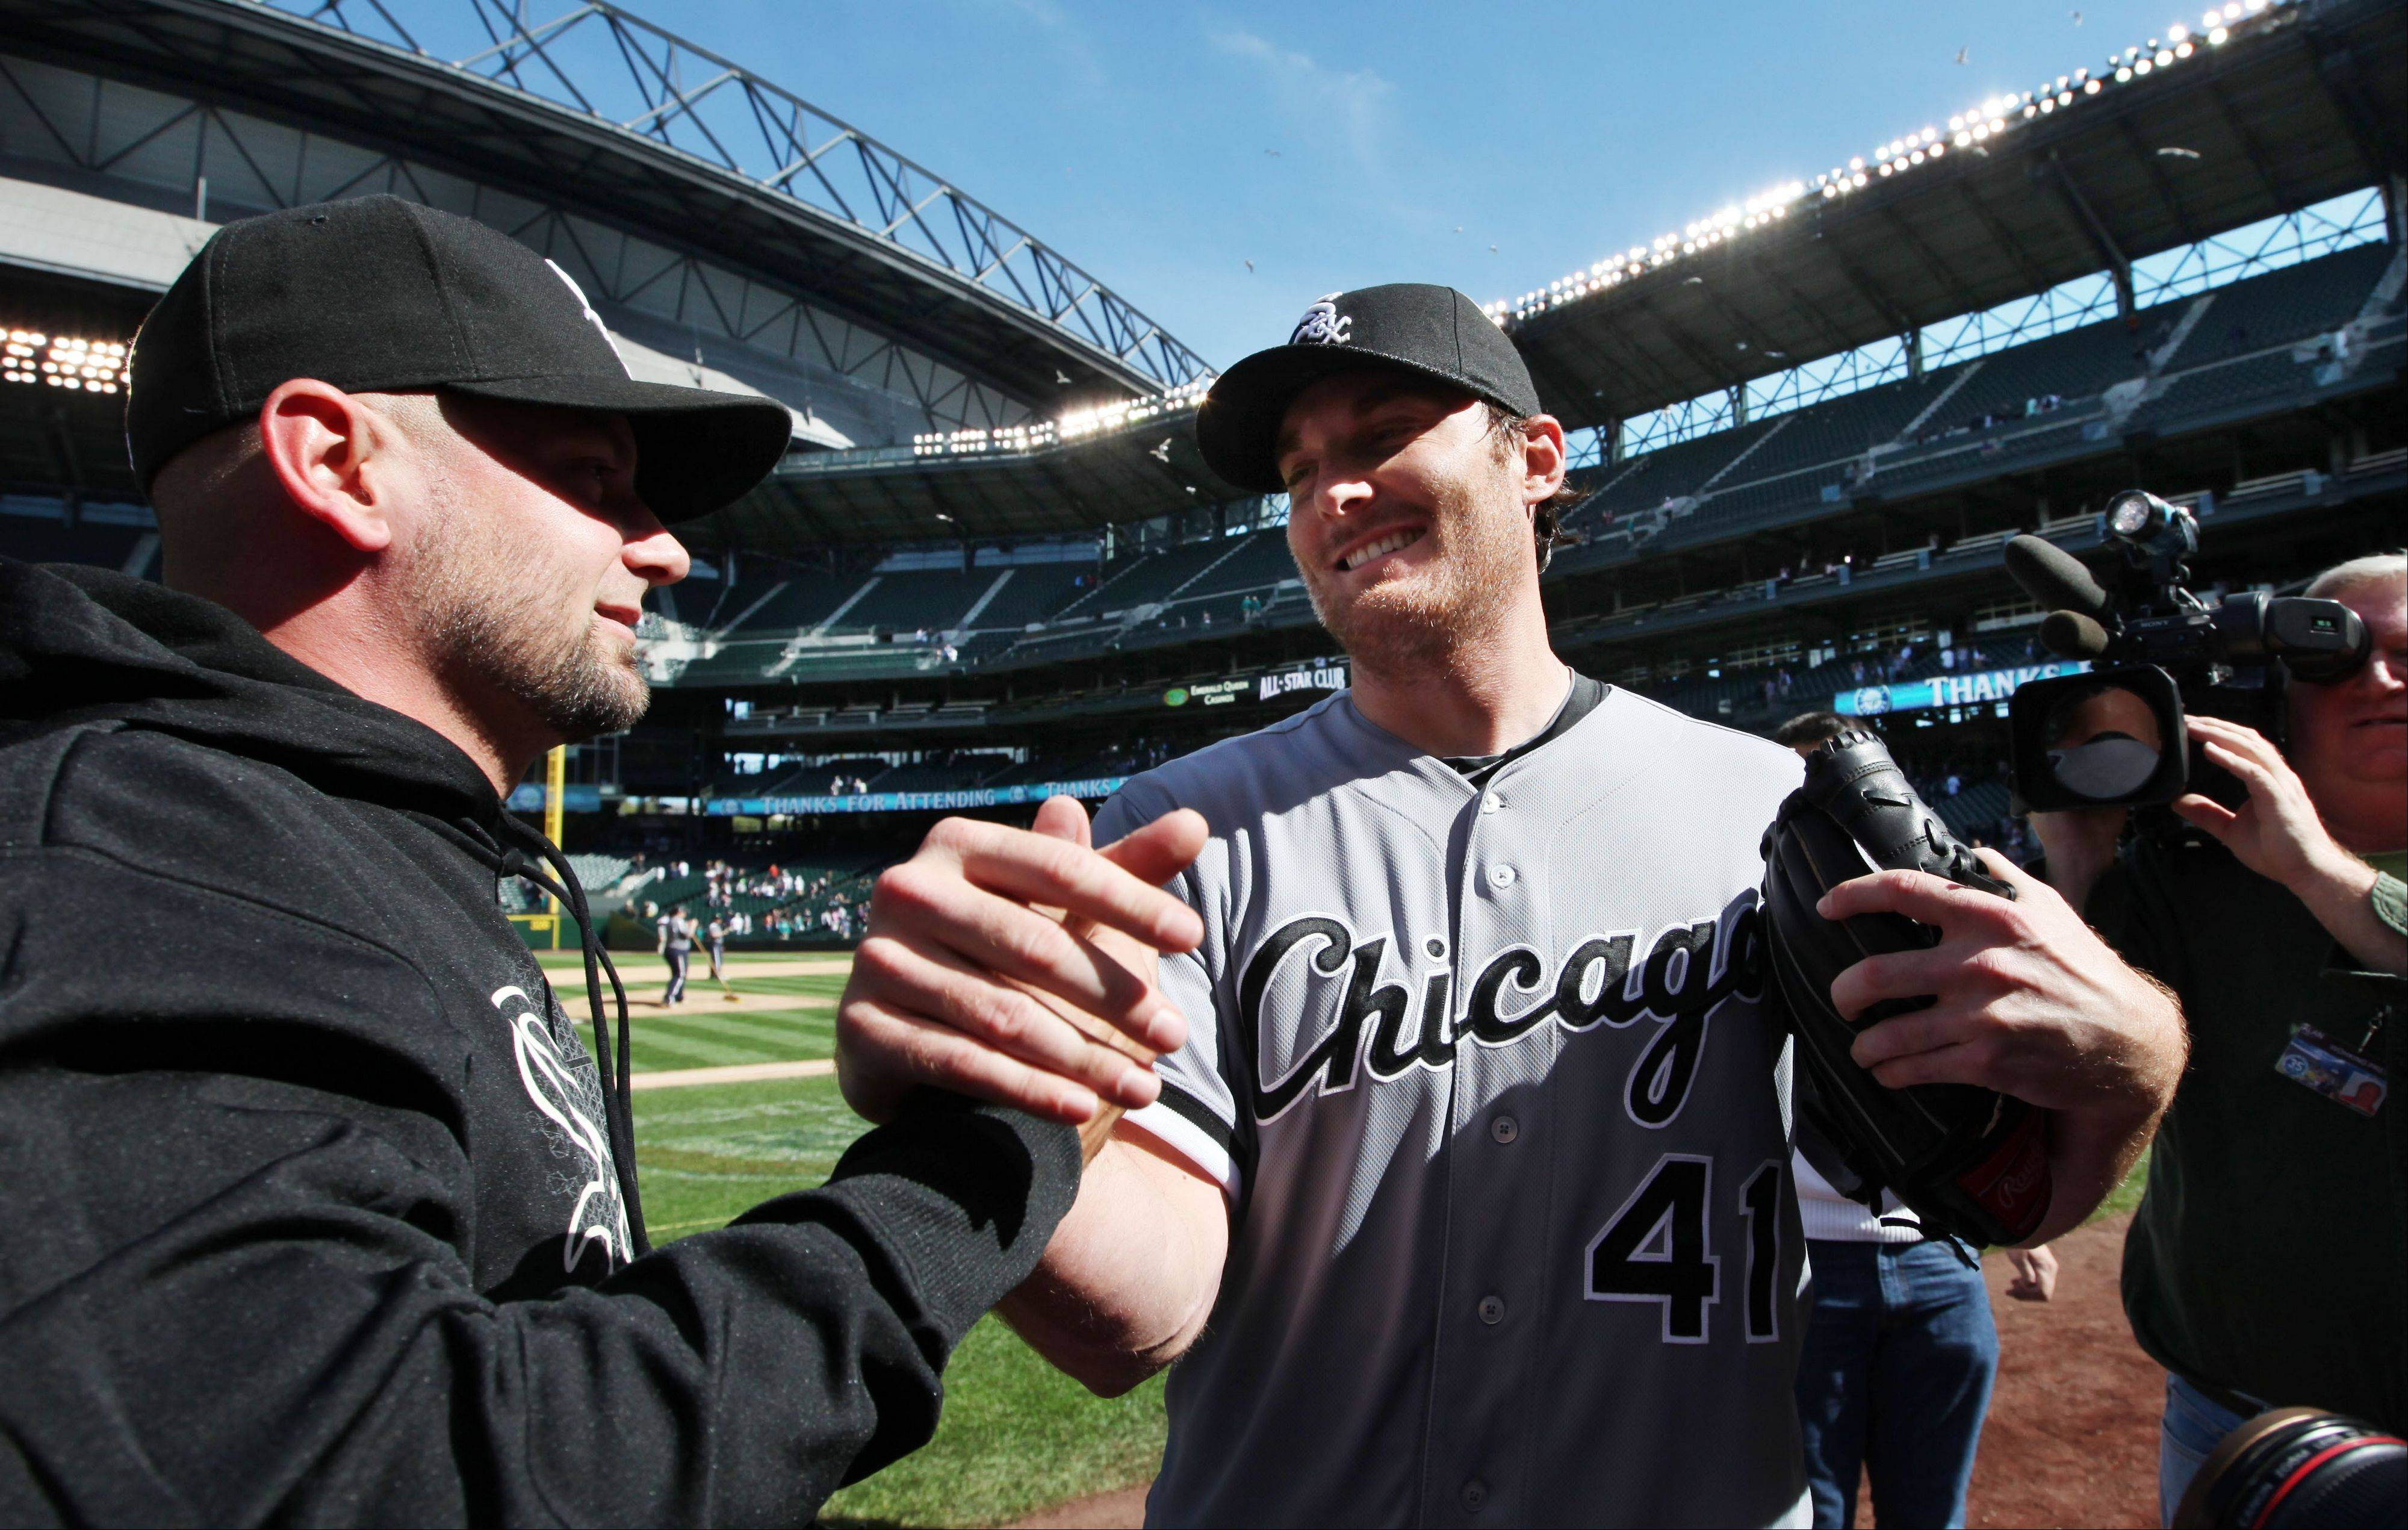 White Sox starting pitcher Phil Humber is congratulated Saturday after pitching a perfect game.